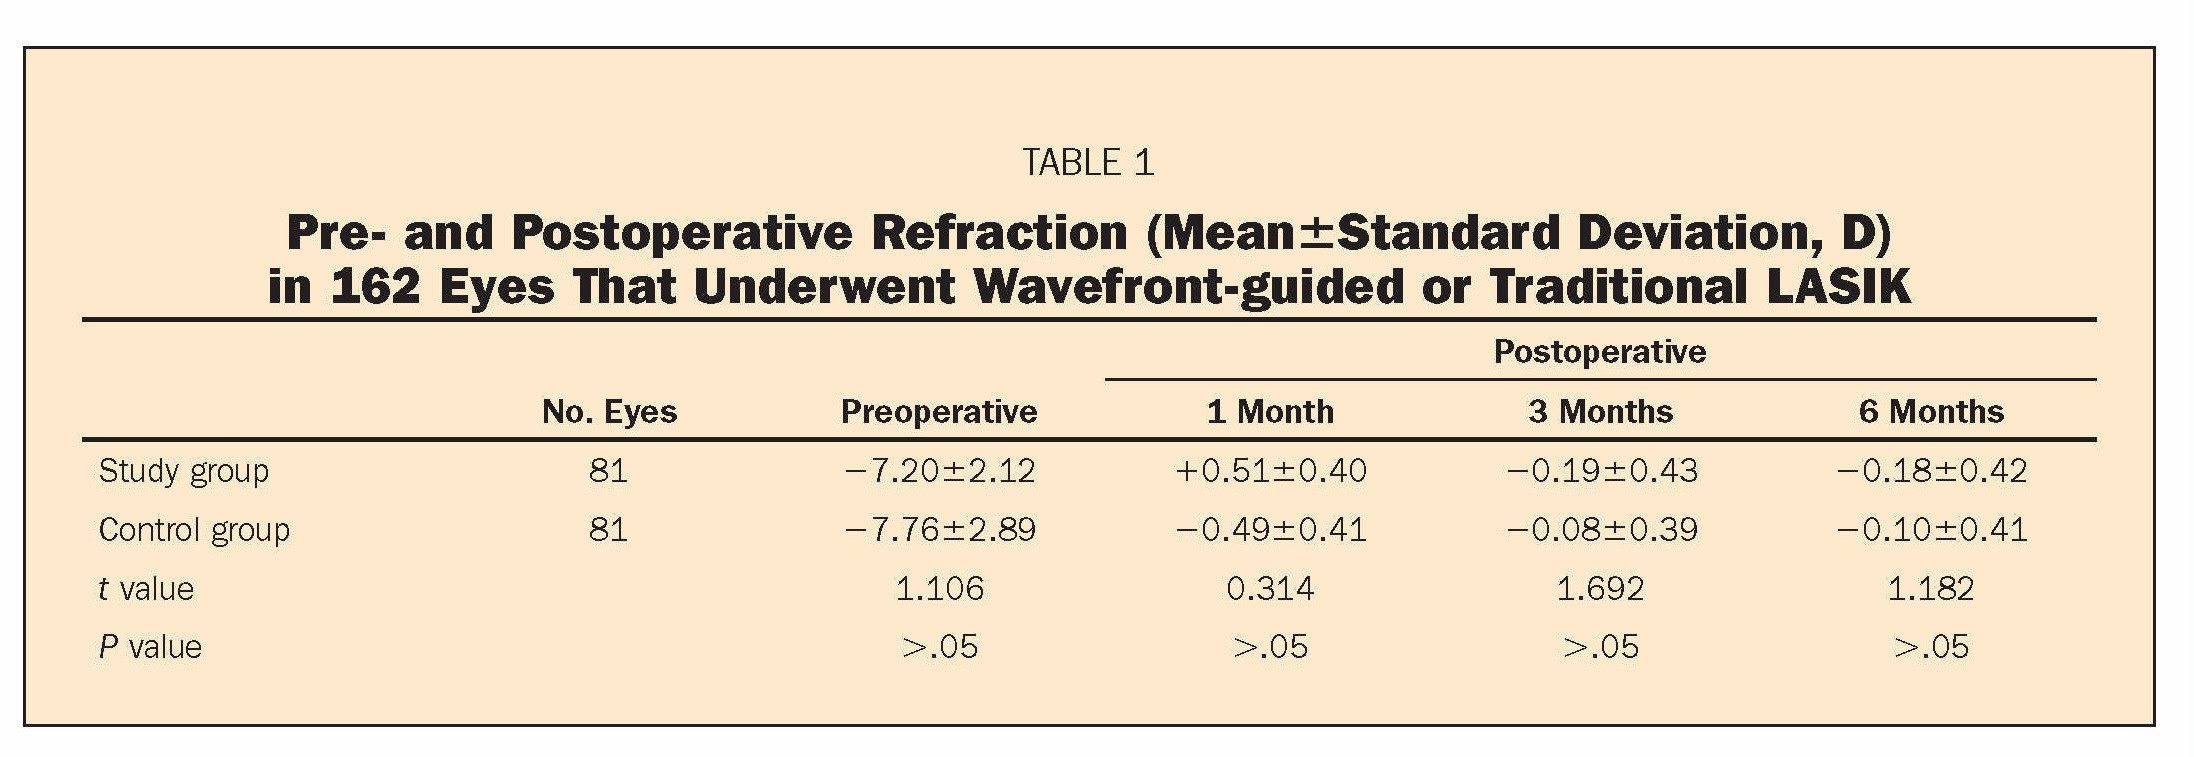 TABLE 1Pre- and Postoperative Refraction (Mean±Standard Deviation, D) in 162 Eyes That Underwent Wavefront-guided or Traditional LASIK